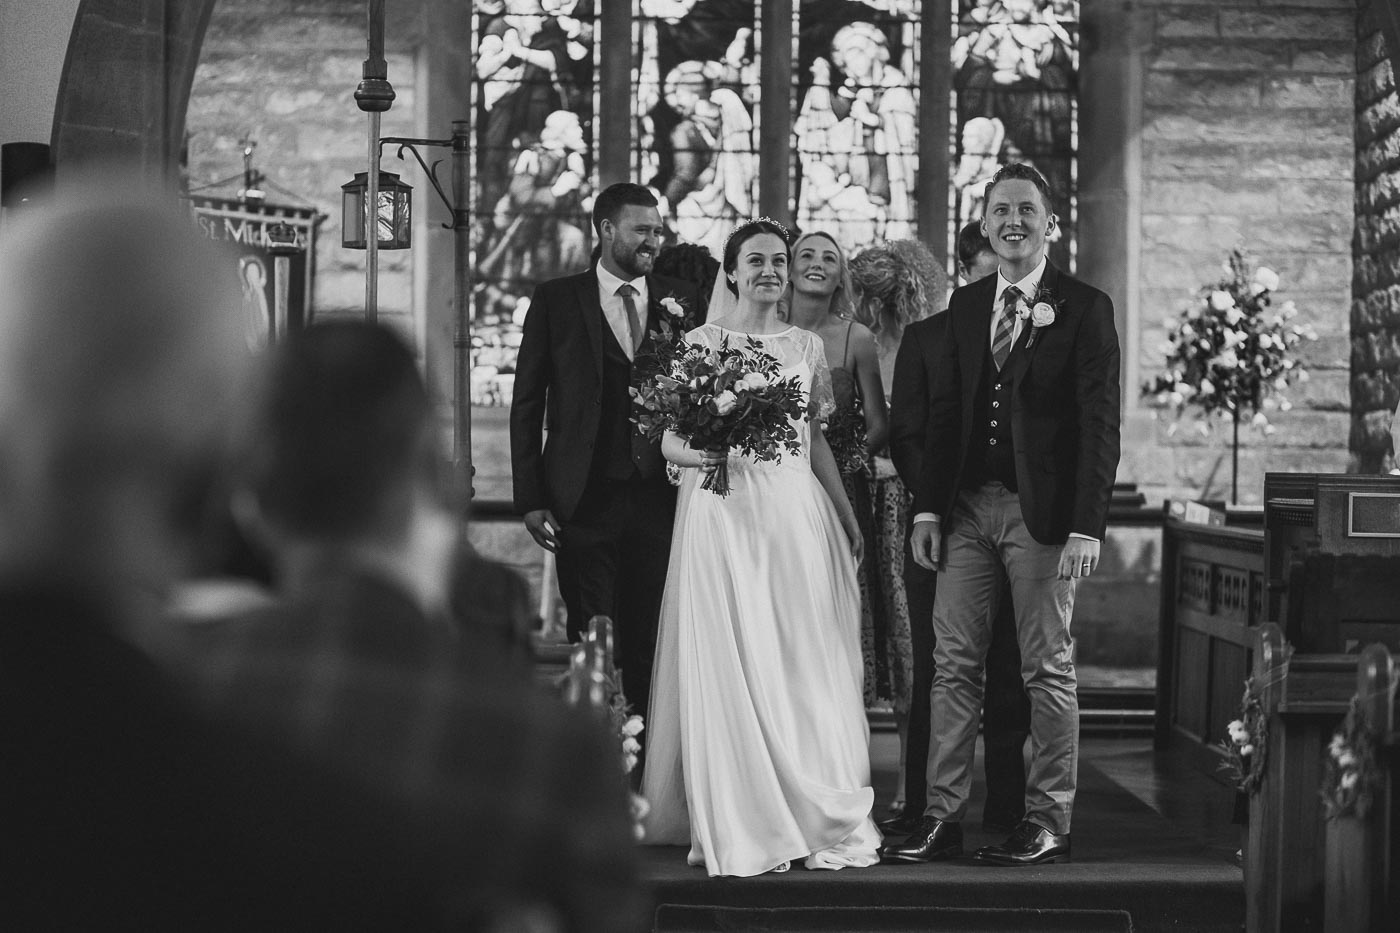 Black and white photograph of the bride and groom at front of church moments before walking out, Unposed wedding photographer